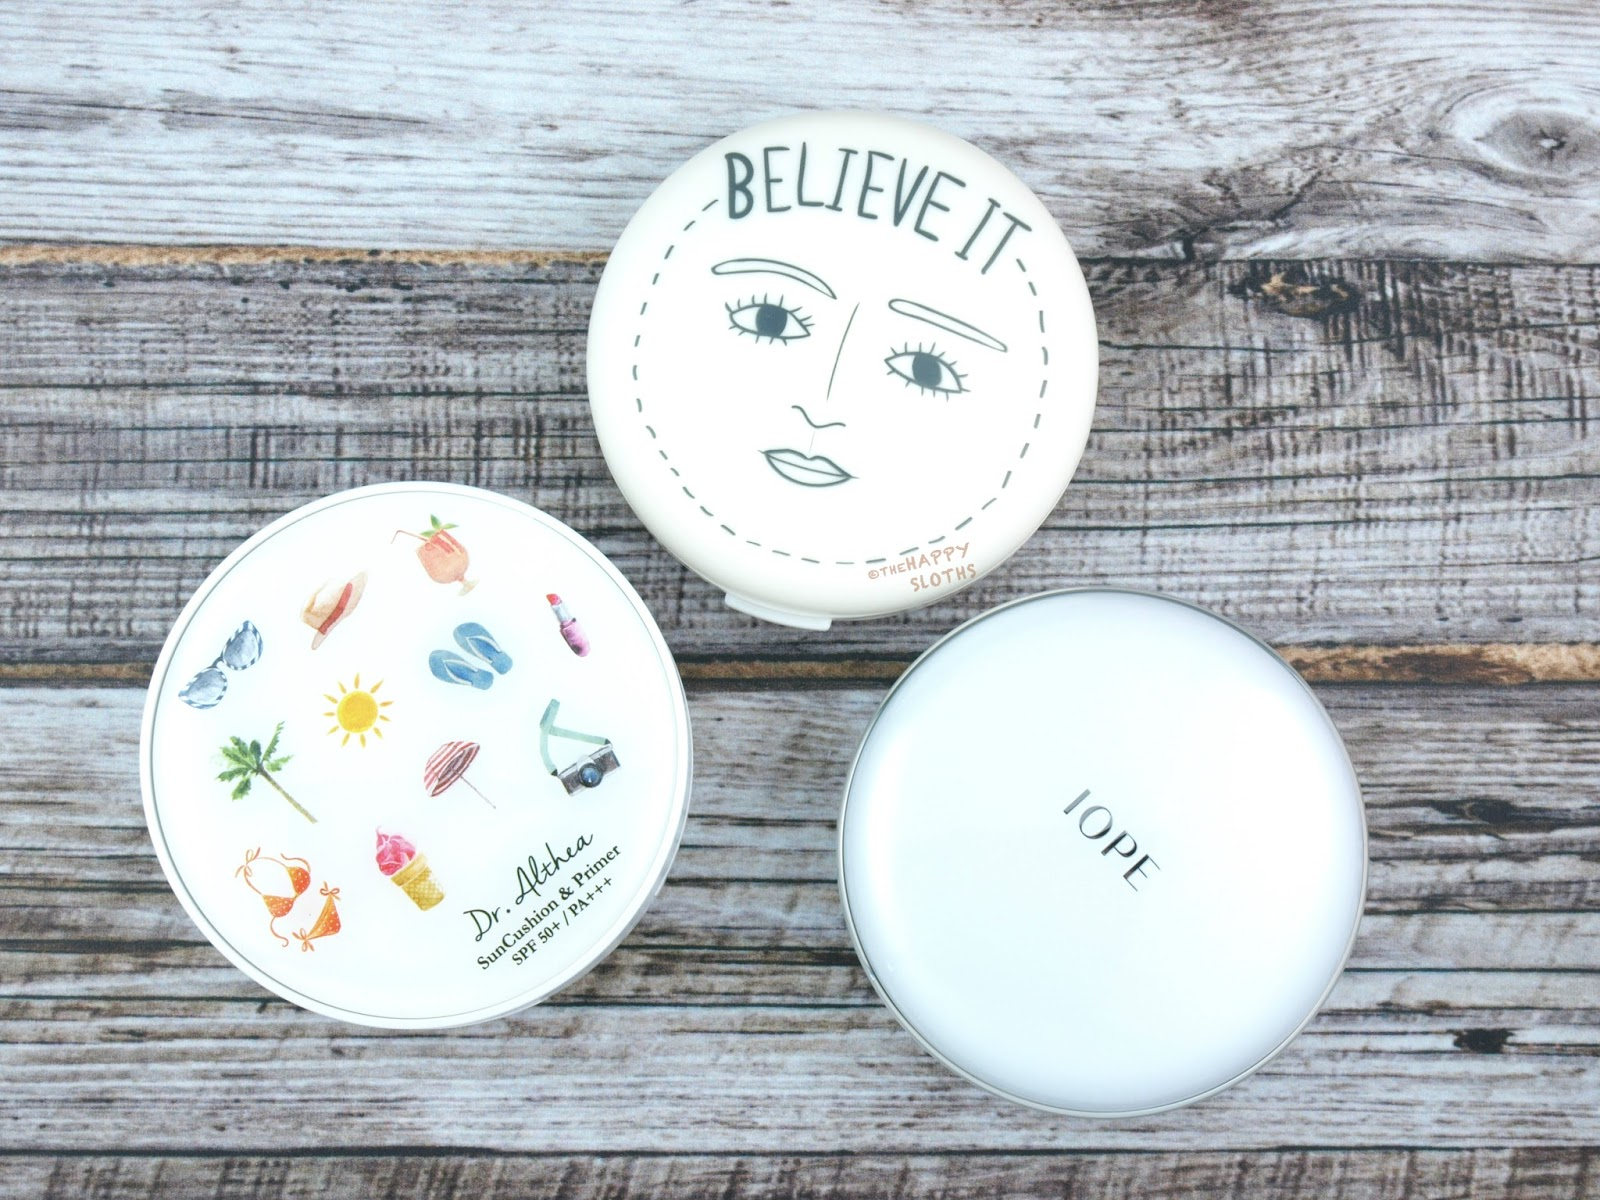 ABBAMART Believe It Powder Pact | Dr. Althea Sun Cushion & Primer | IOPE Air Cushion Matte Longwear